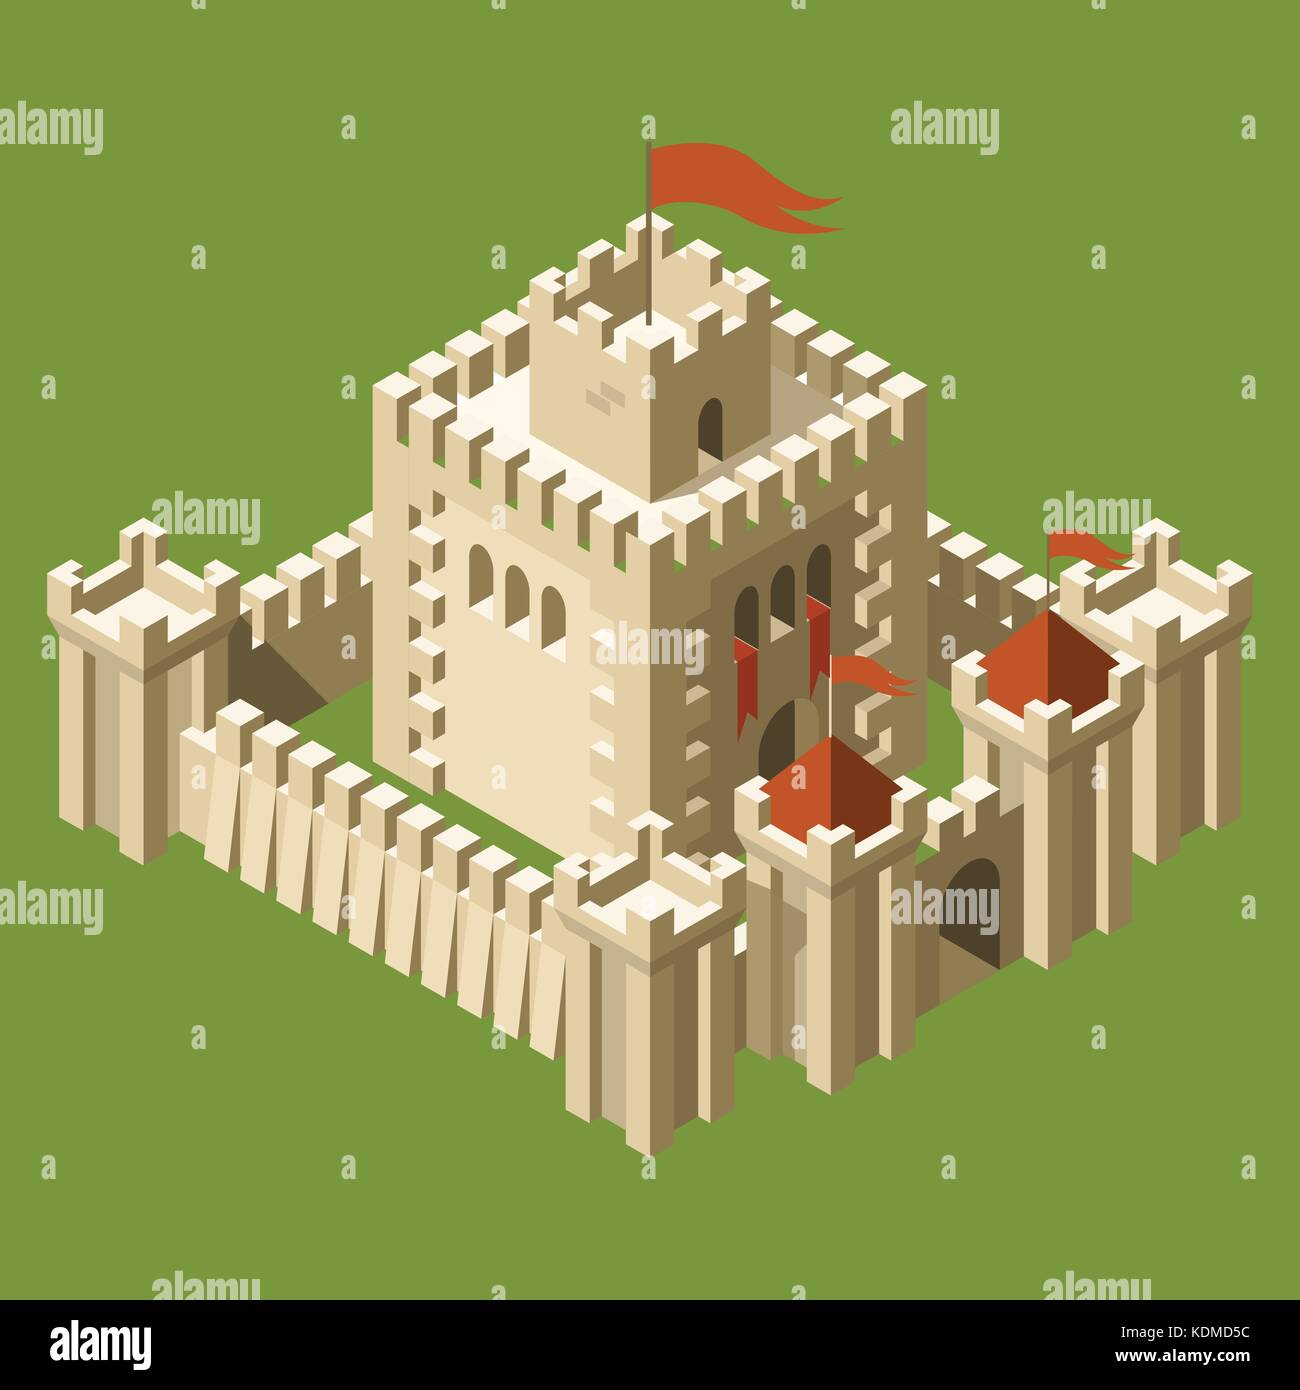 Isometric medieval castle with fortified wall and towers - Stock Vector